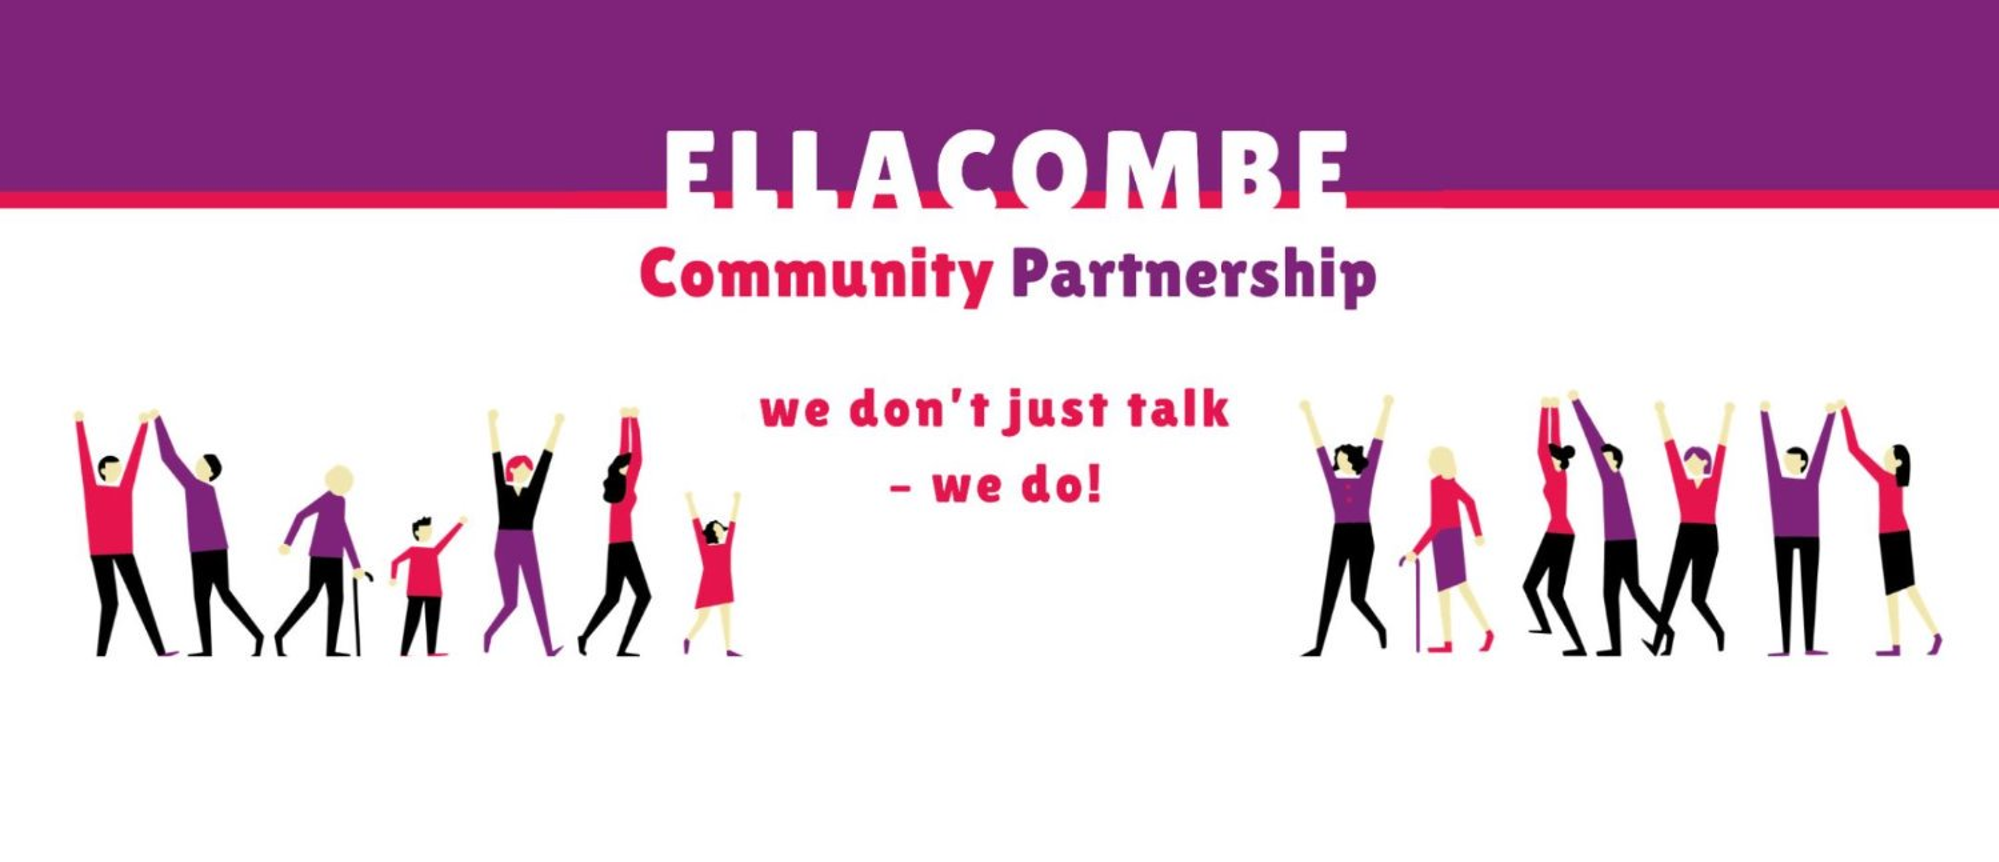 Ellacombe Community Partnership